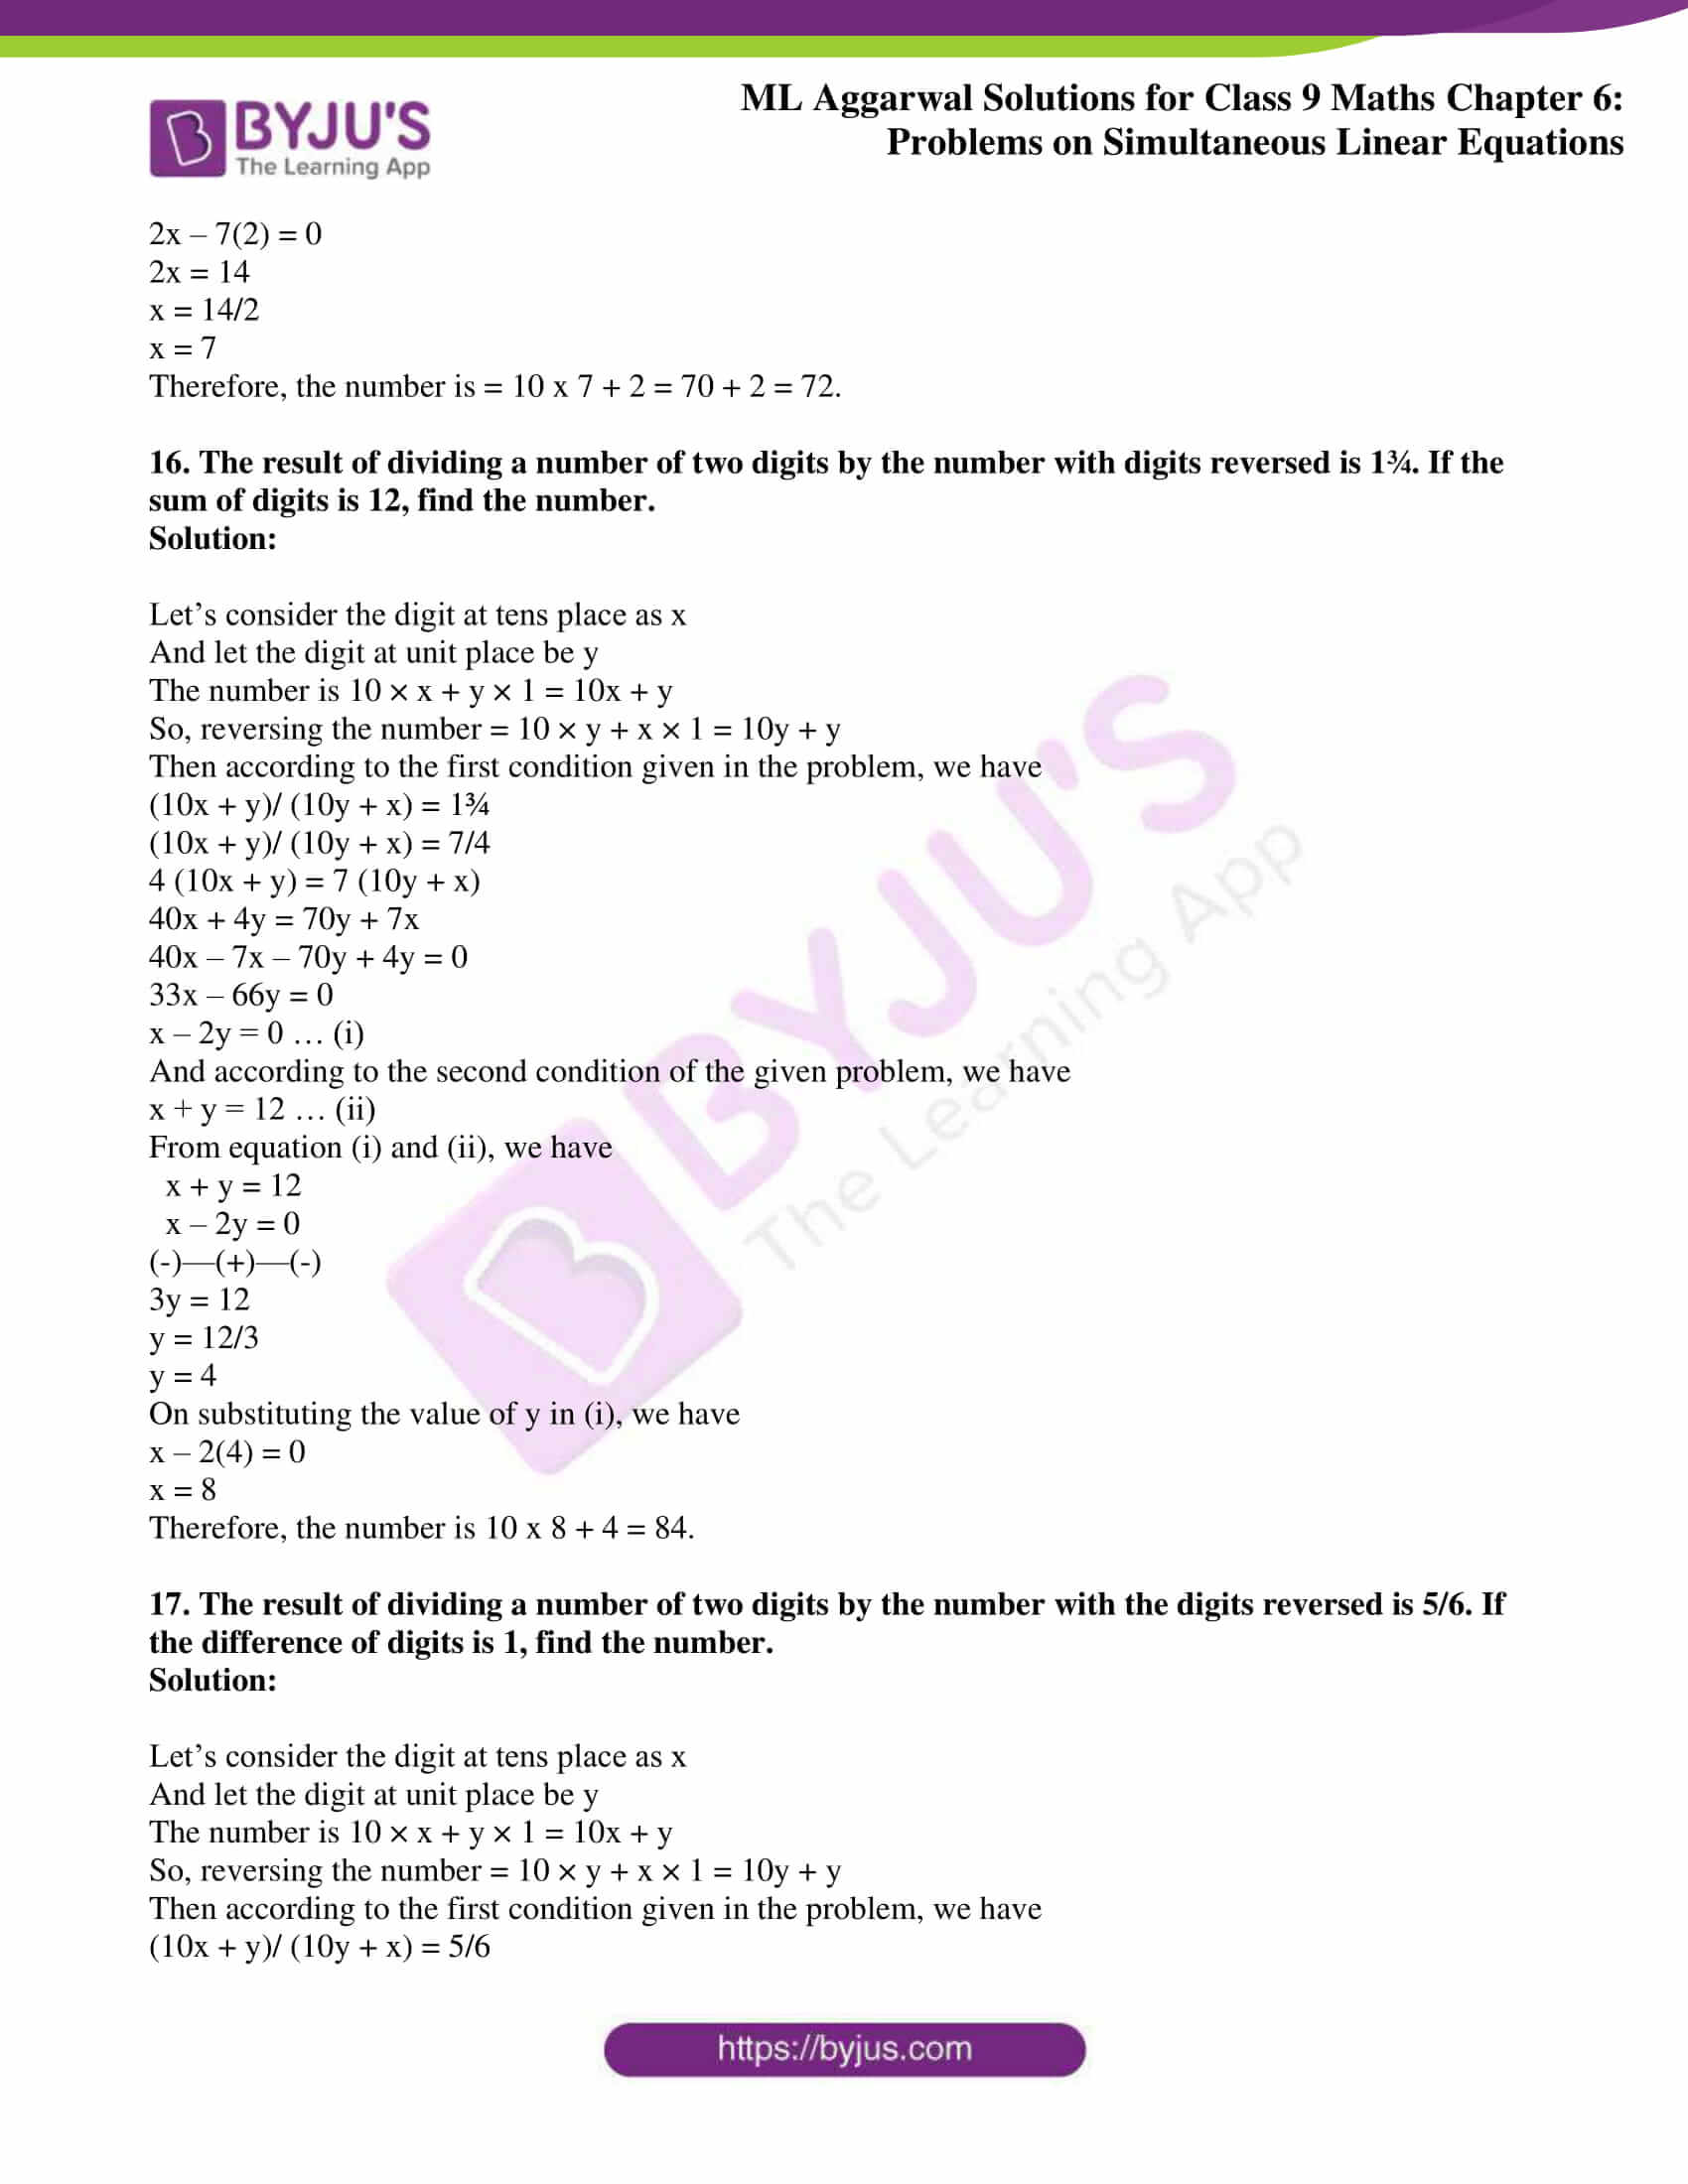 ml aggarwal solutions for class 9 maths chapter 6 09